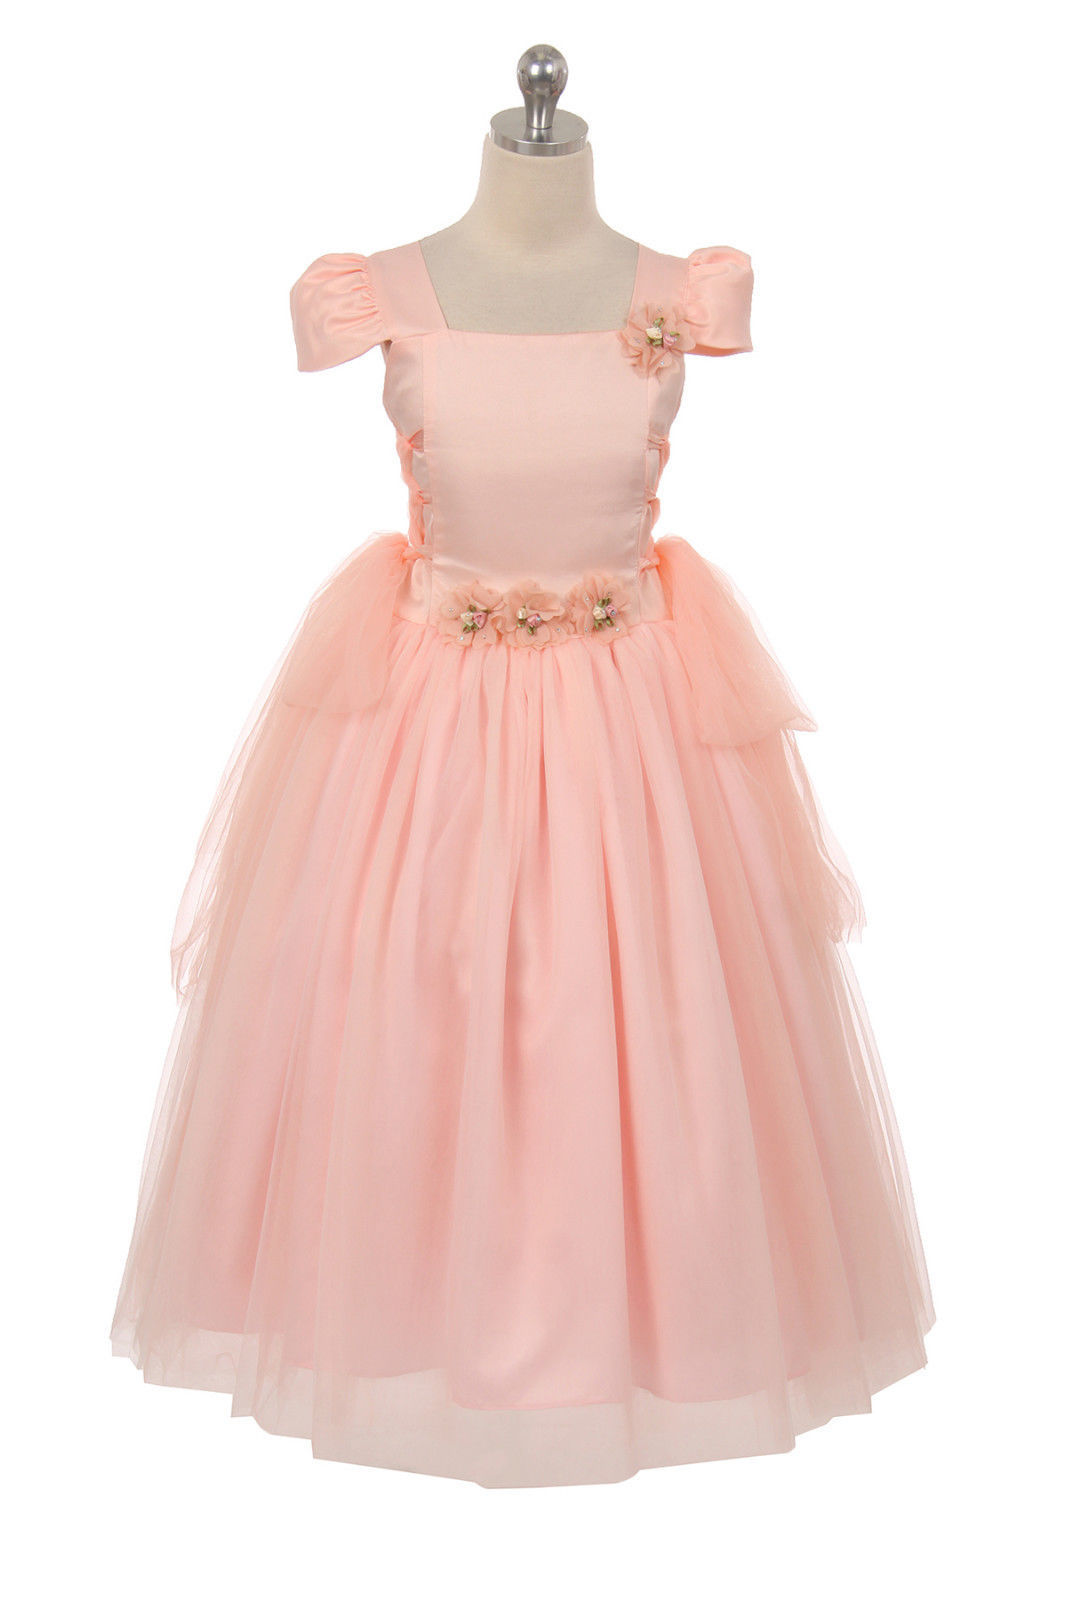 Image 1 of Chic Baby Blush Pink Tea Length Pageant Party Holiday Dress, 2, 4, 6 USA - Blush